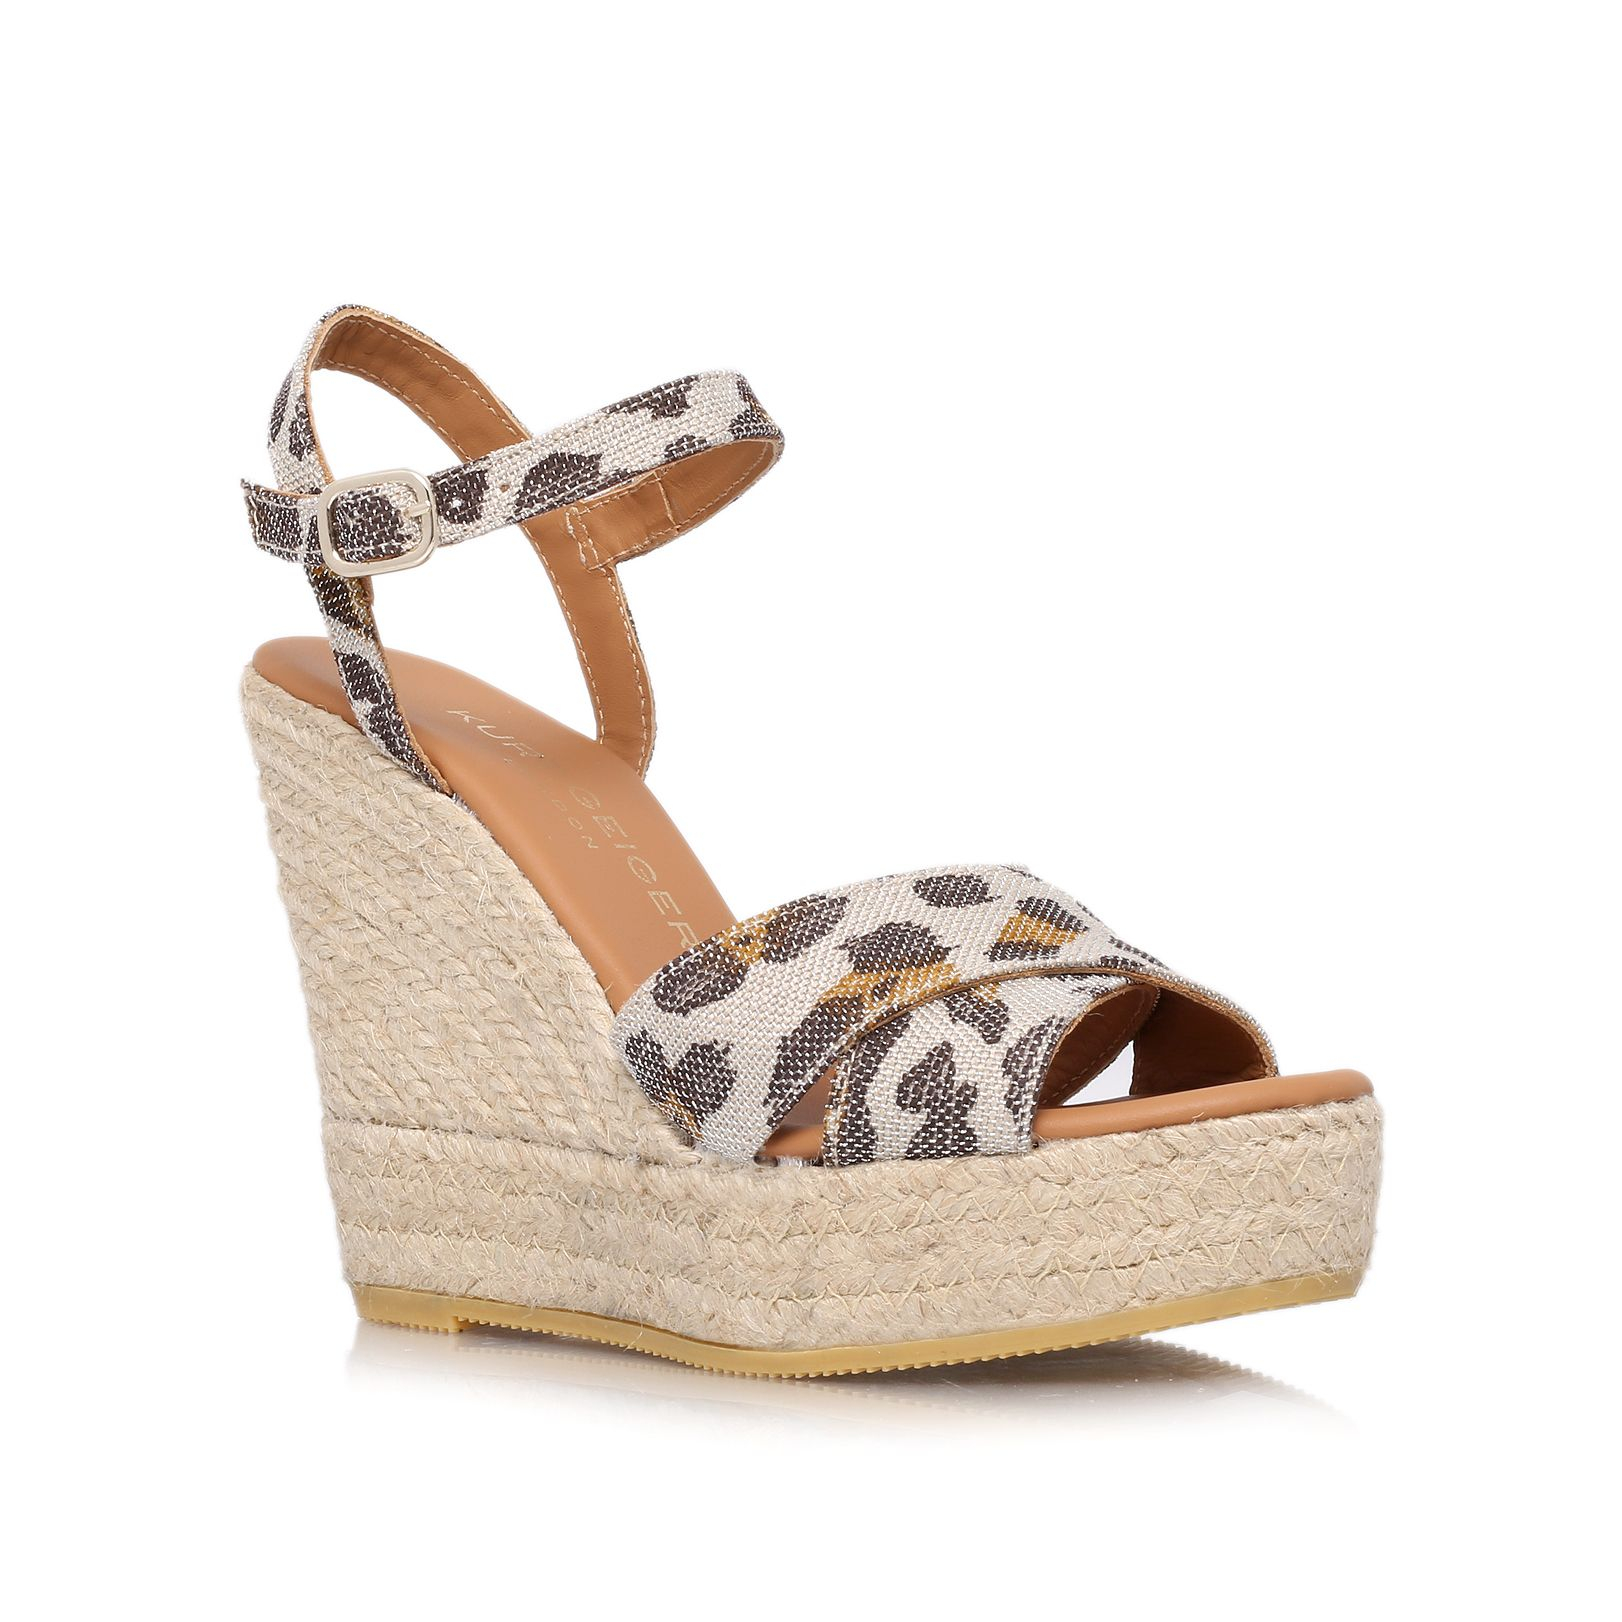 Kurt Geiger Amerie High Wedge Heel Sandals In Silver